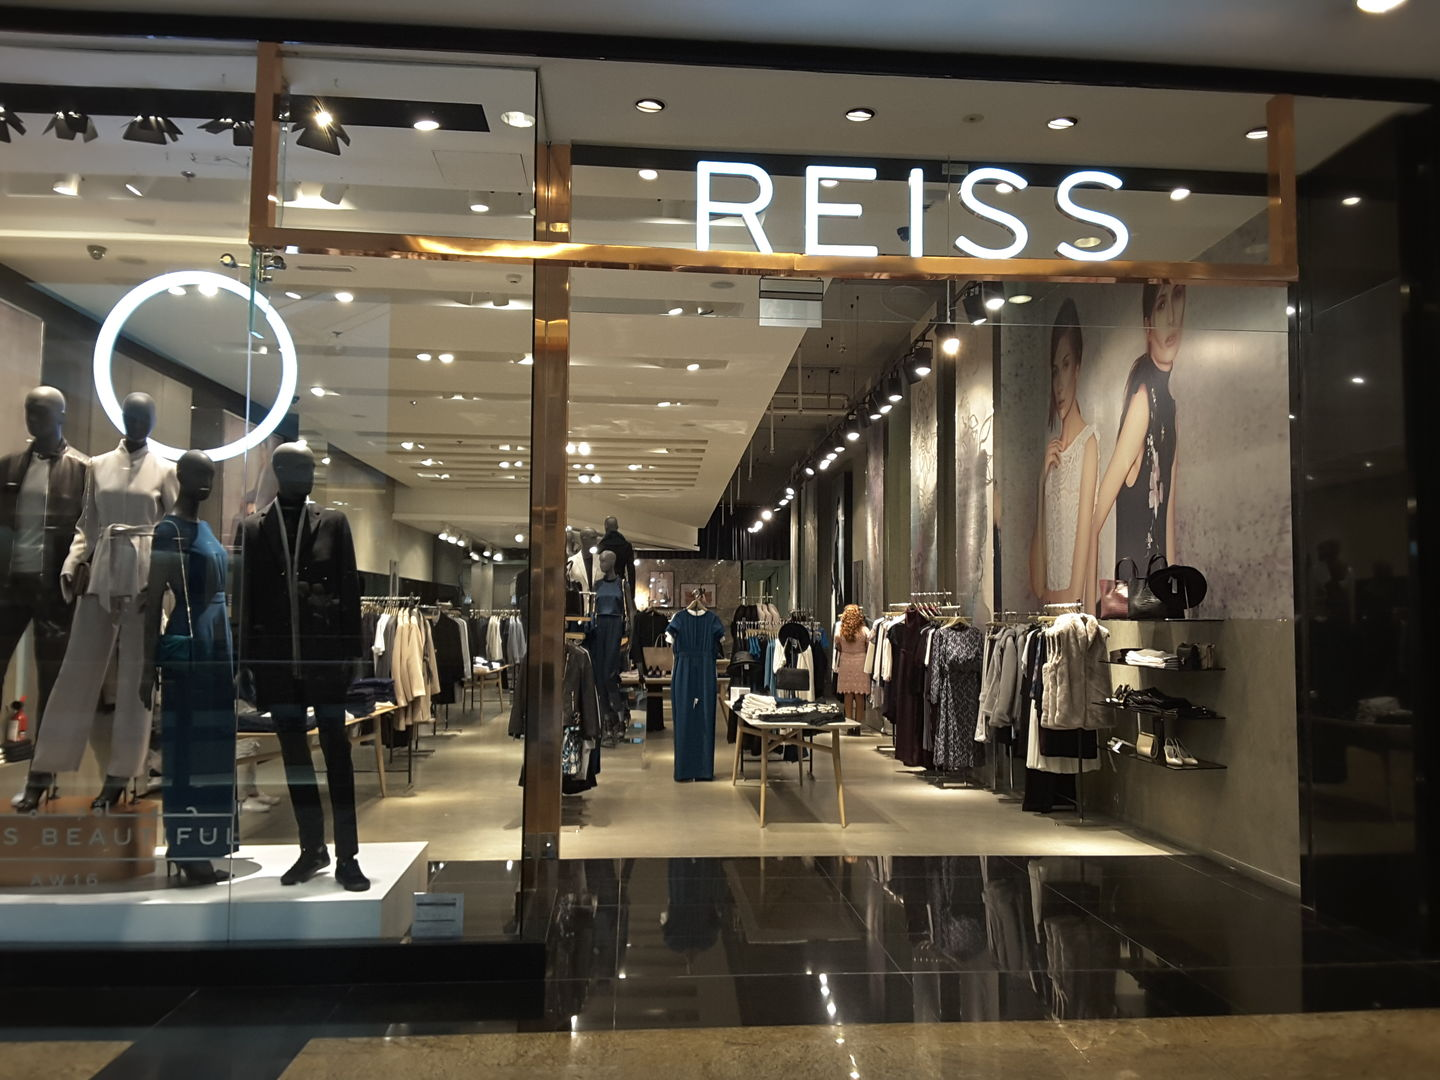 HiDubai-business-reiss-shopping-apparel-al-barsha-1-dubai-2